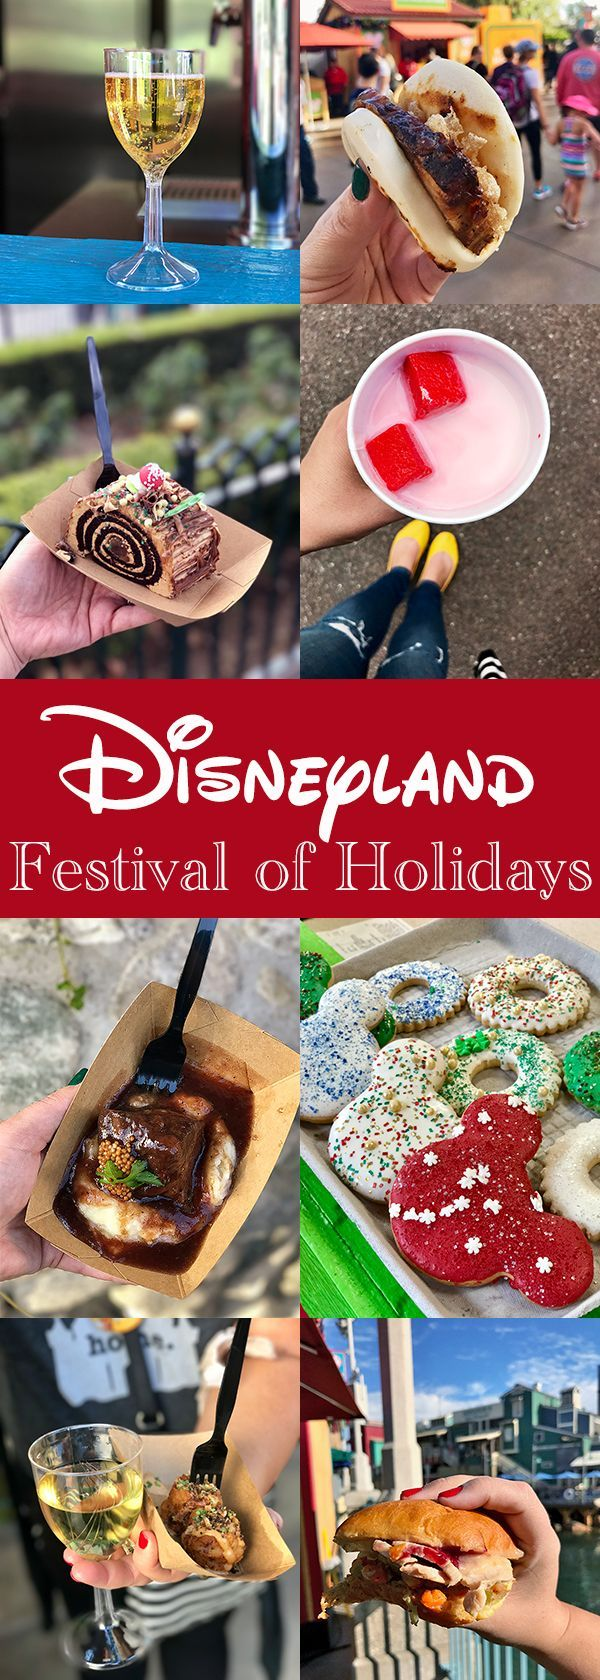 Disneyland Festival of Holidays at California Adventure Park #disneylandfood